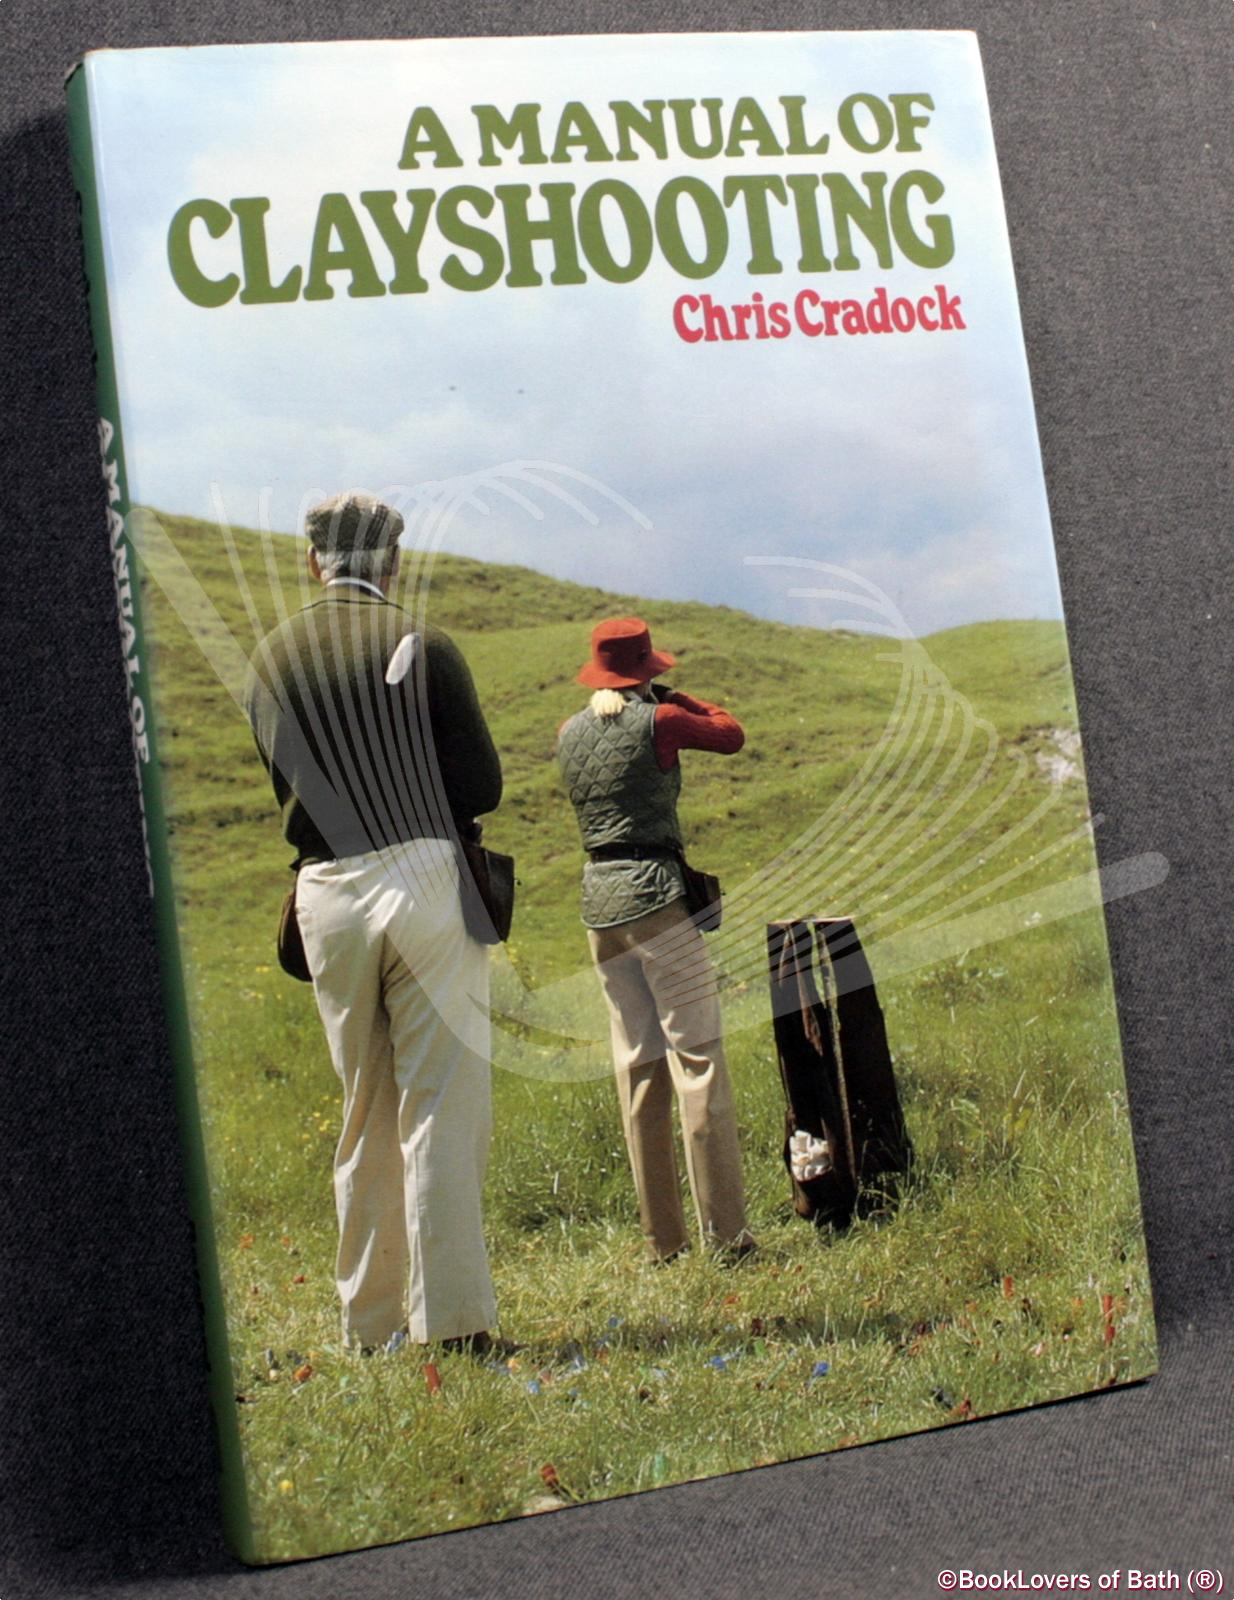 A Manual of Clayshooting - Chris Craddock